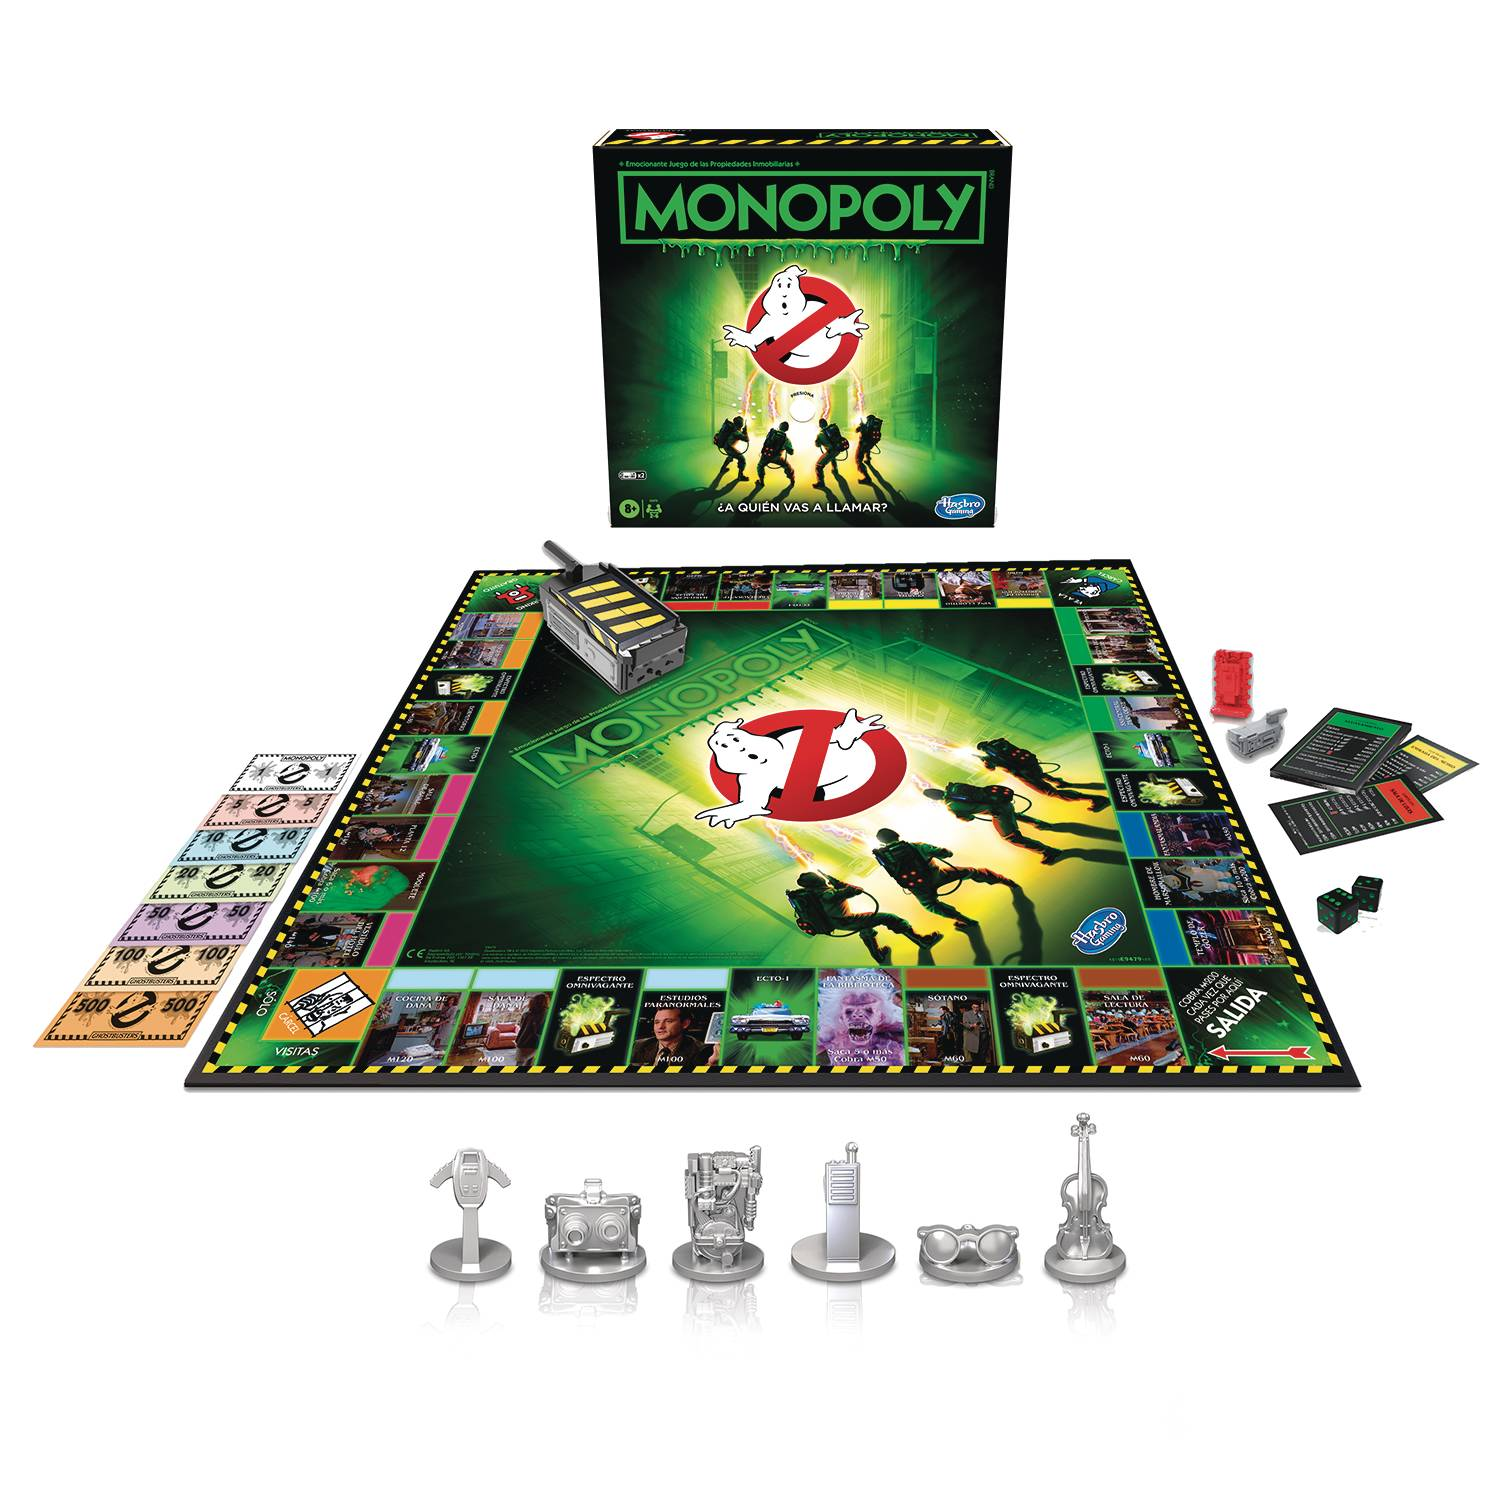 MONOPOLY GHOSTBUSTERS ED GAME CS